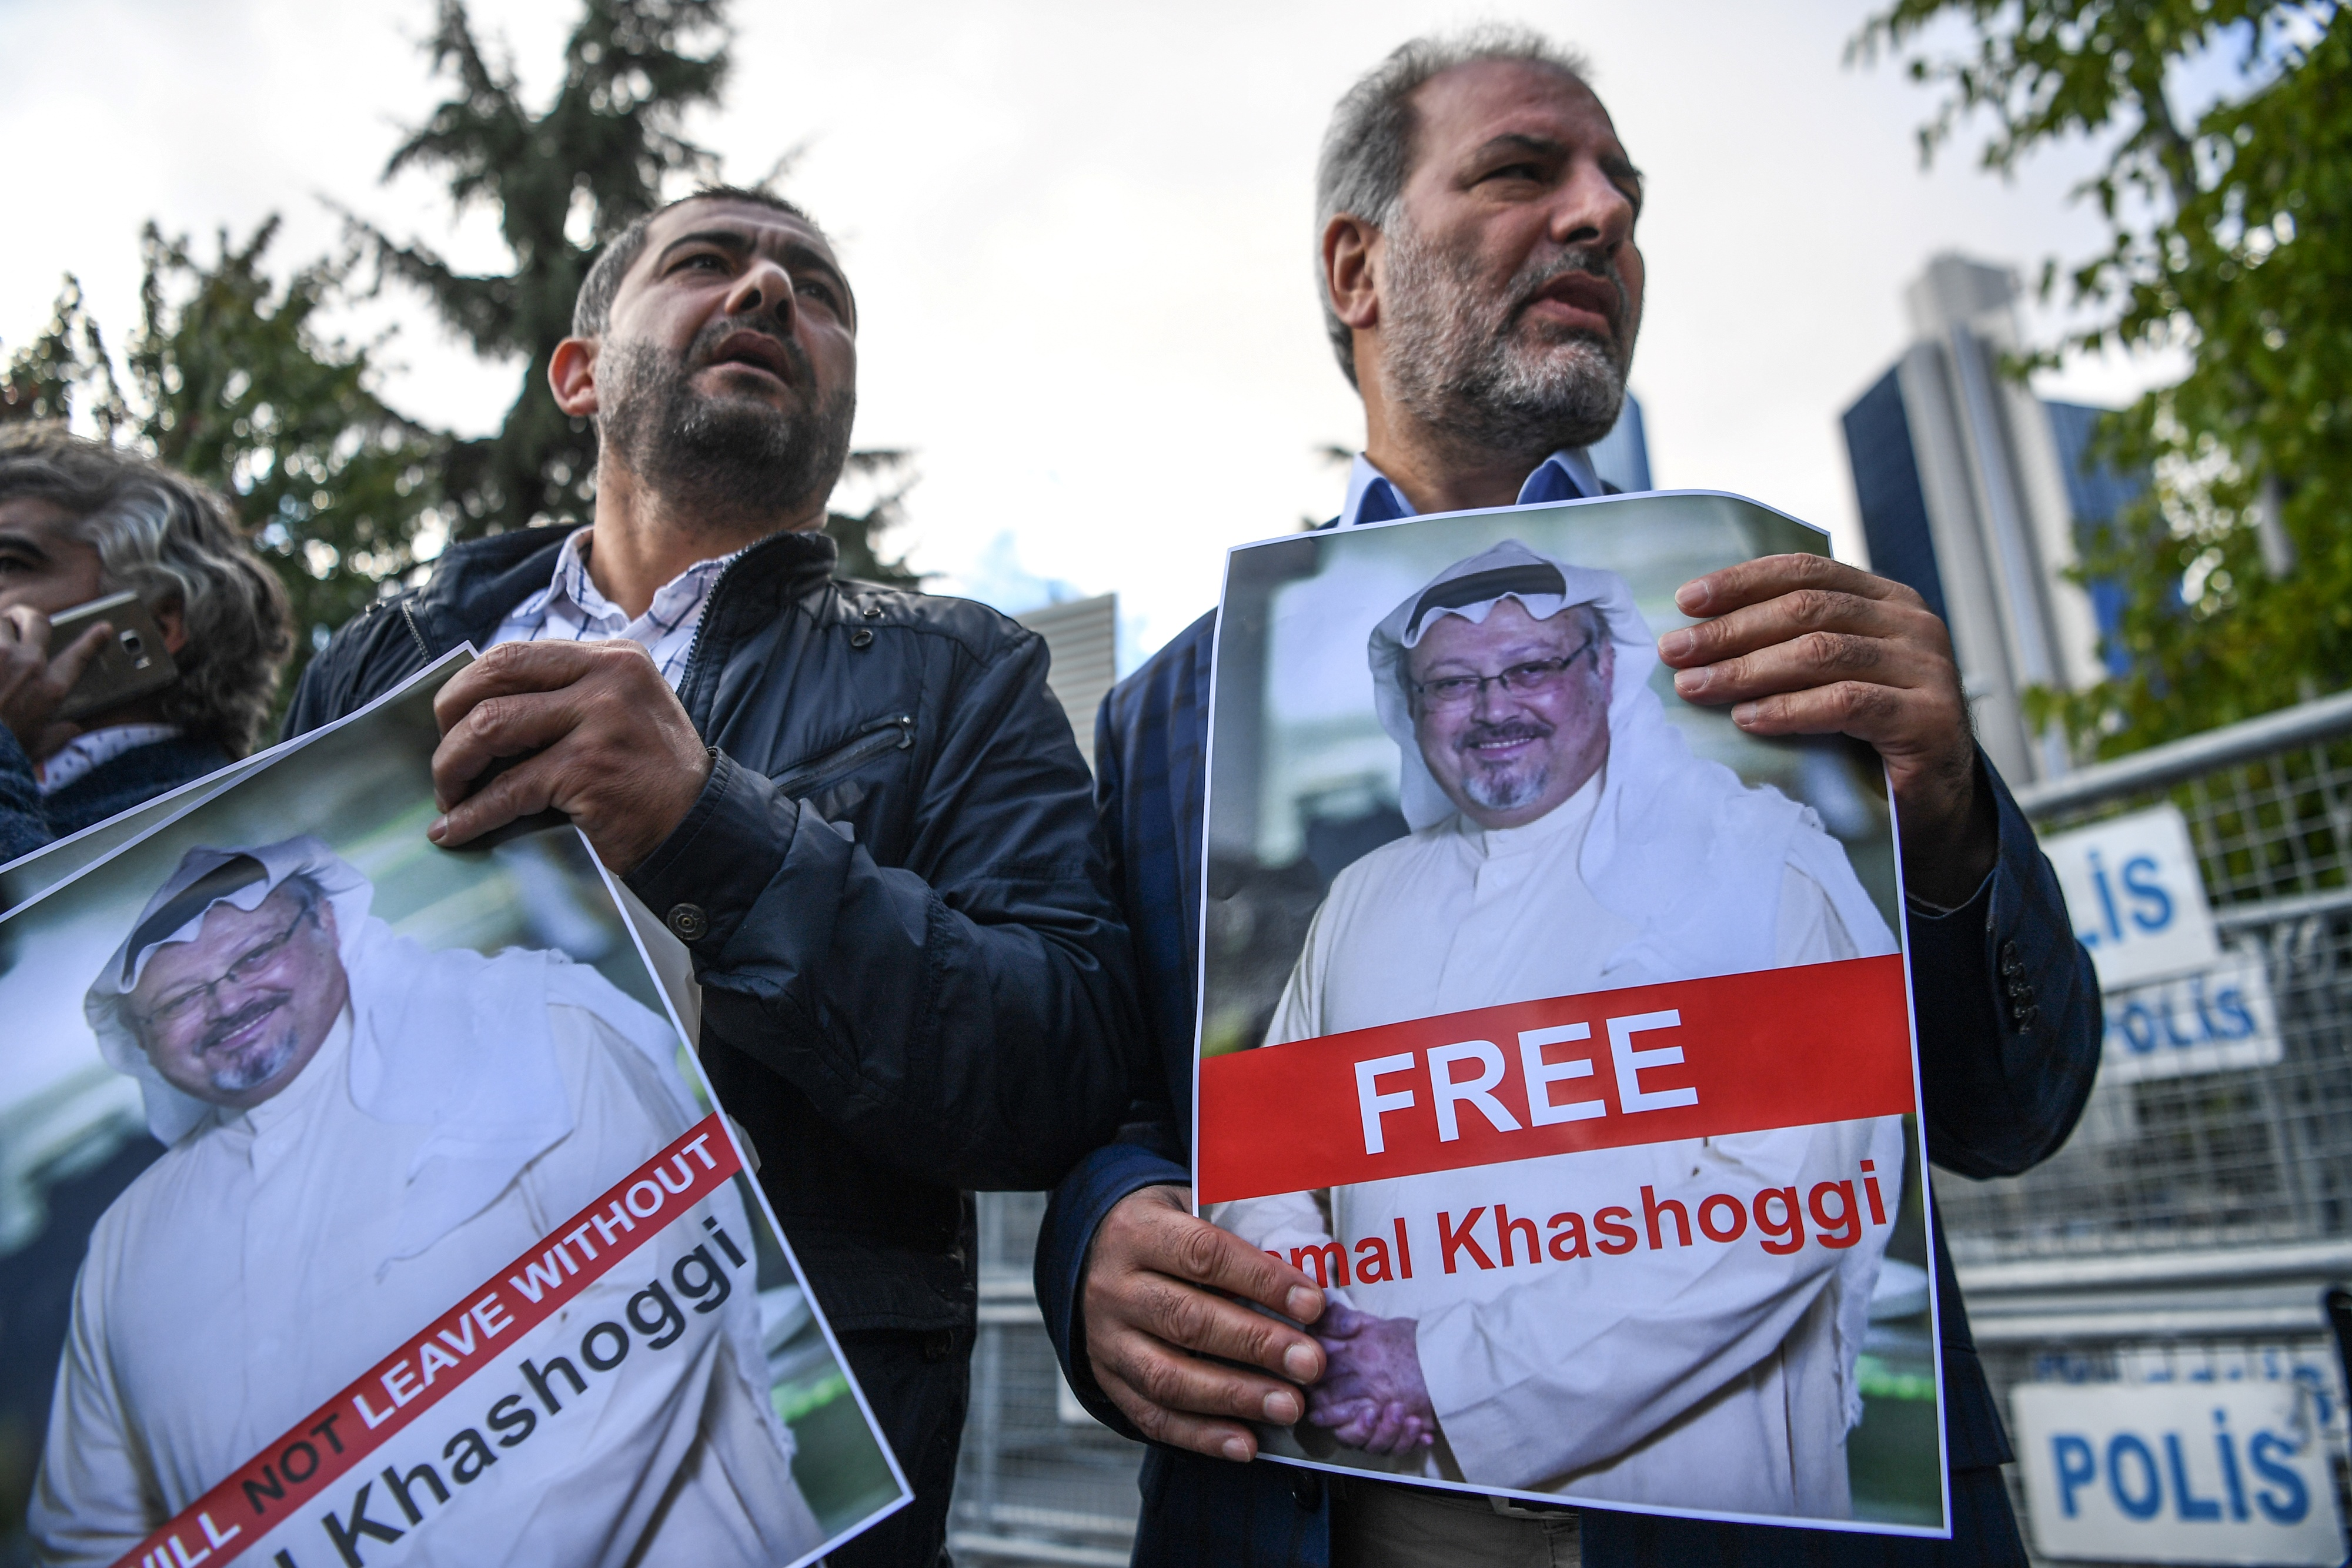 Protestors hold pictures of missing Saudi journalist Jamal Khashoggi during a demonstration in front of the Saudi Arabian consulate, on October 5, 2018 in Istanbul.